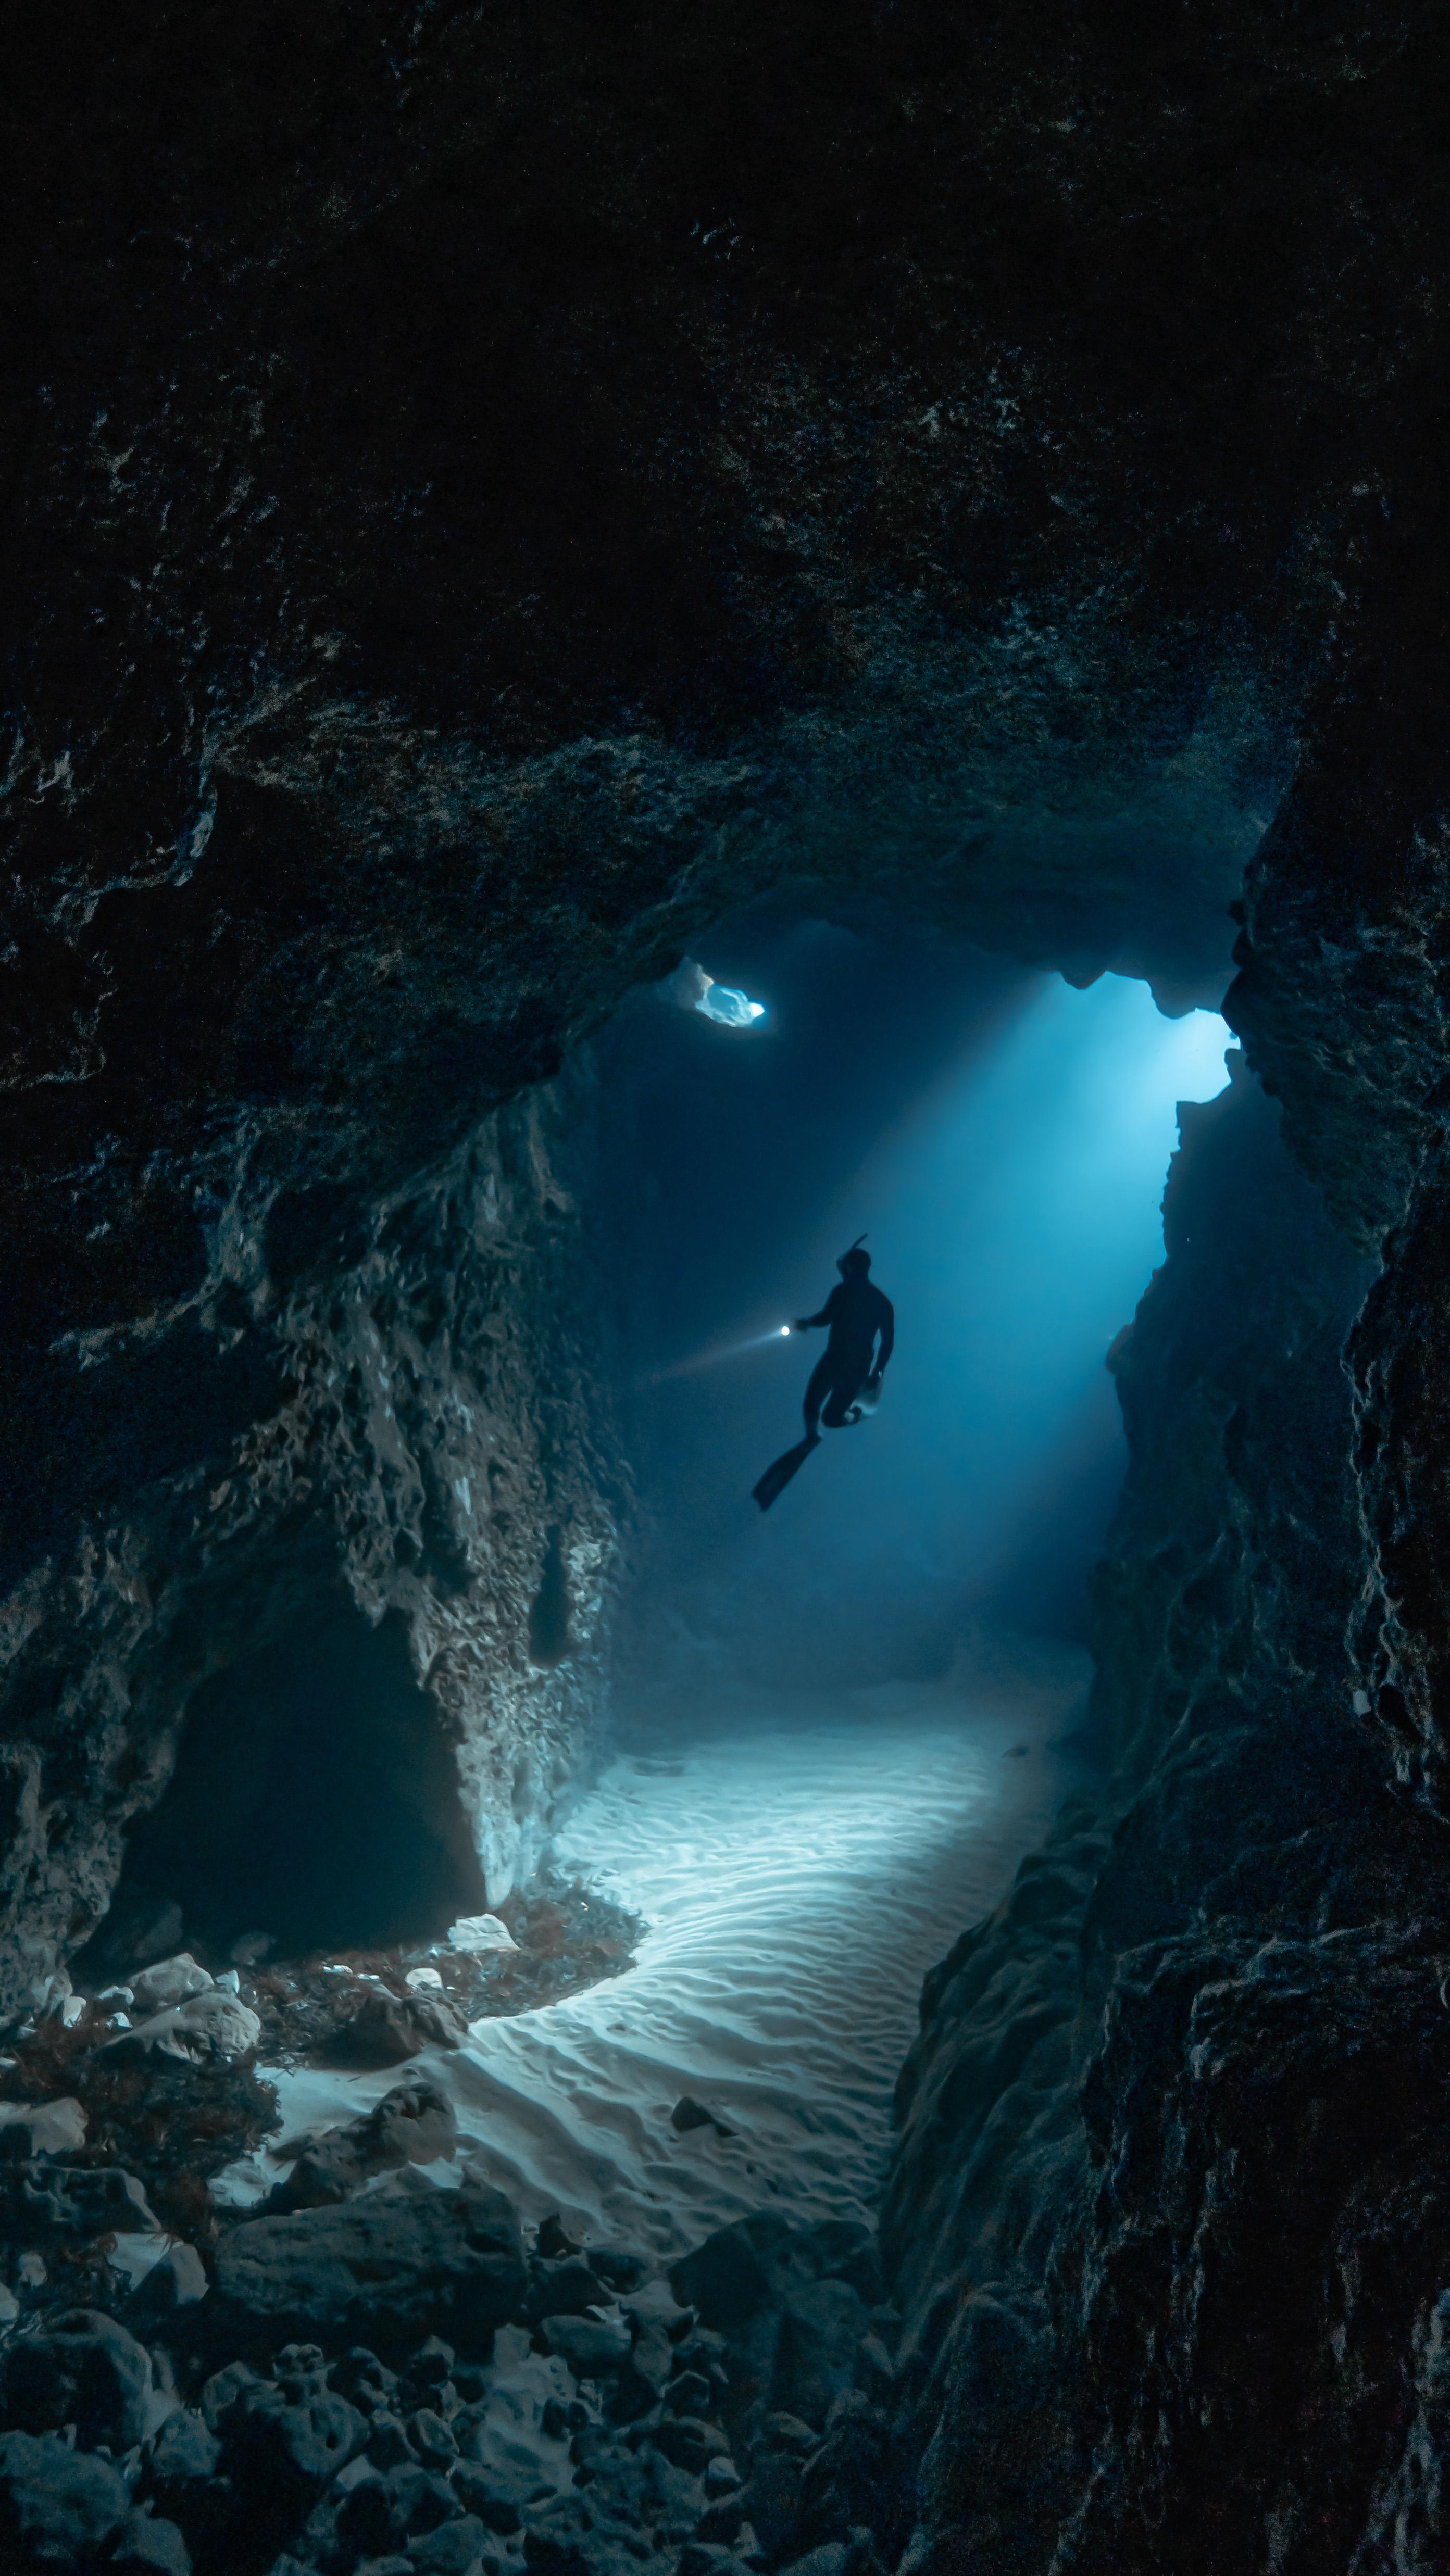 A free diver in an underwater cave network